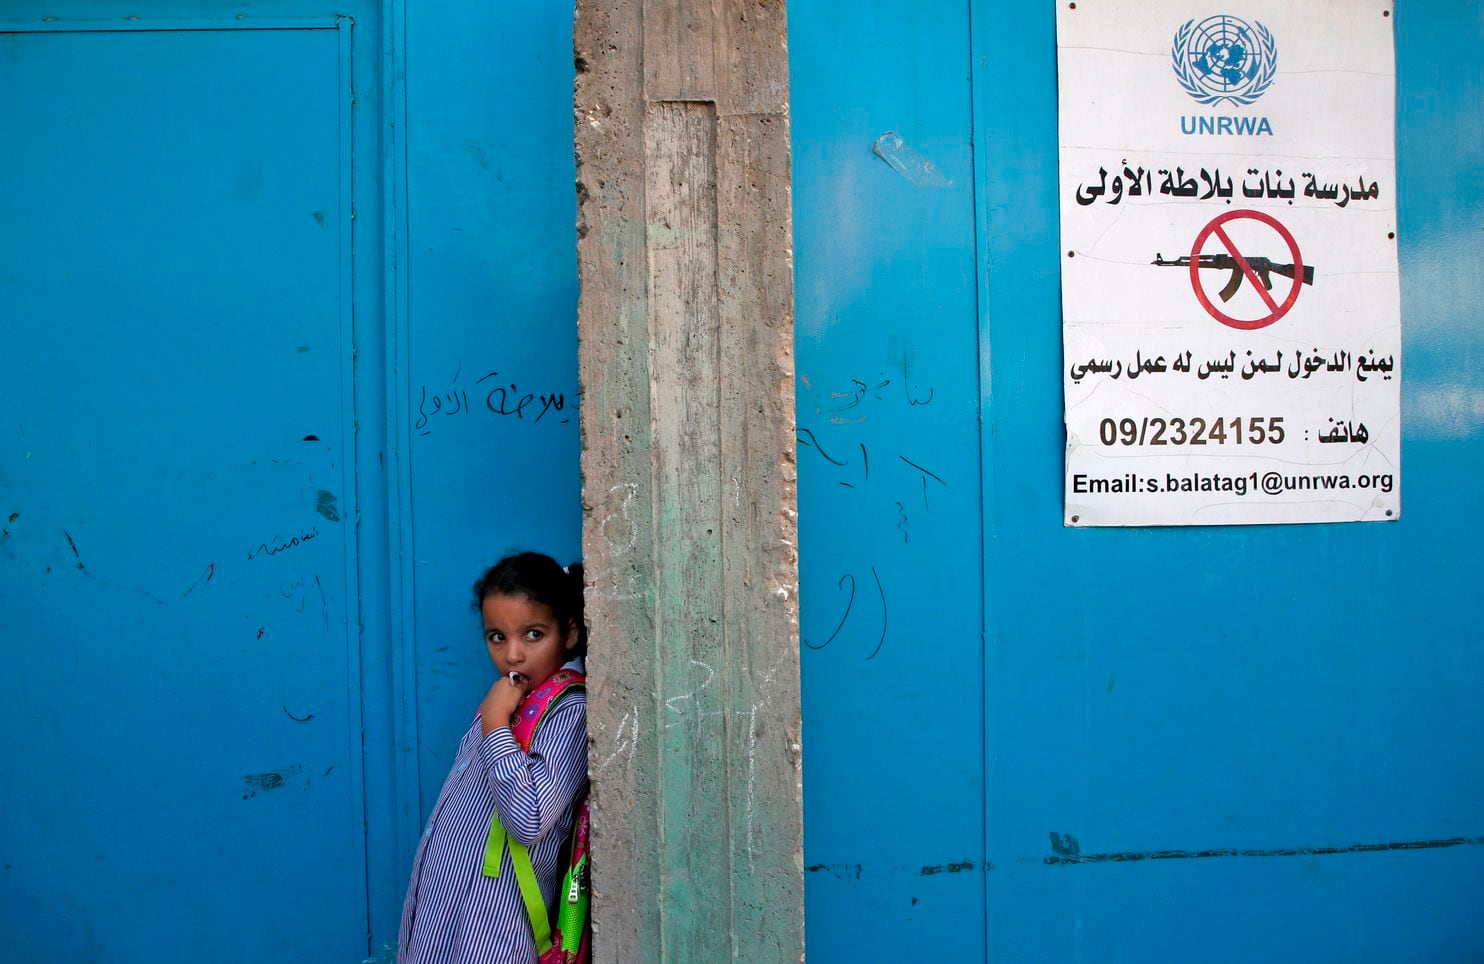 Trump administration to end U.S. funding to U.N. program for Palestinian refugees